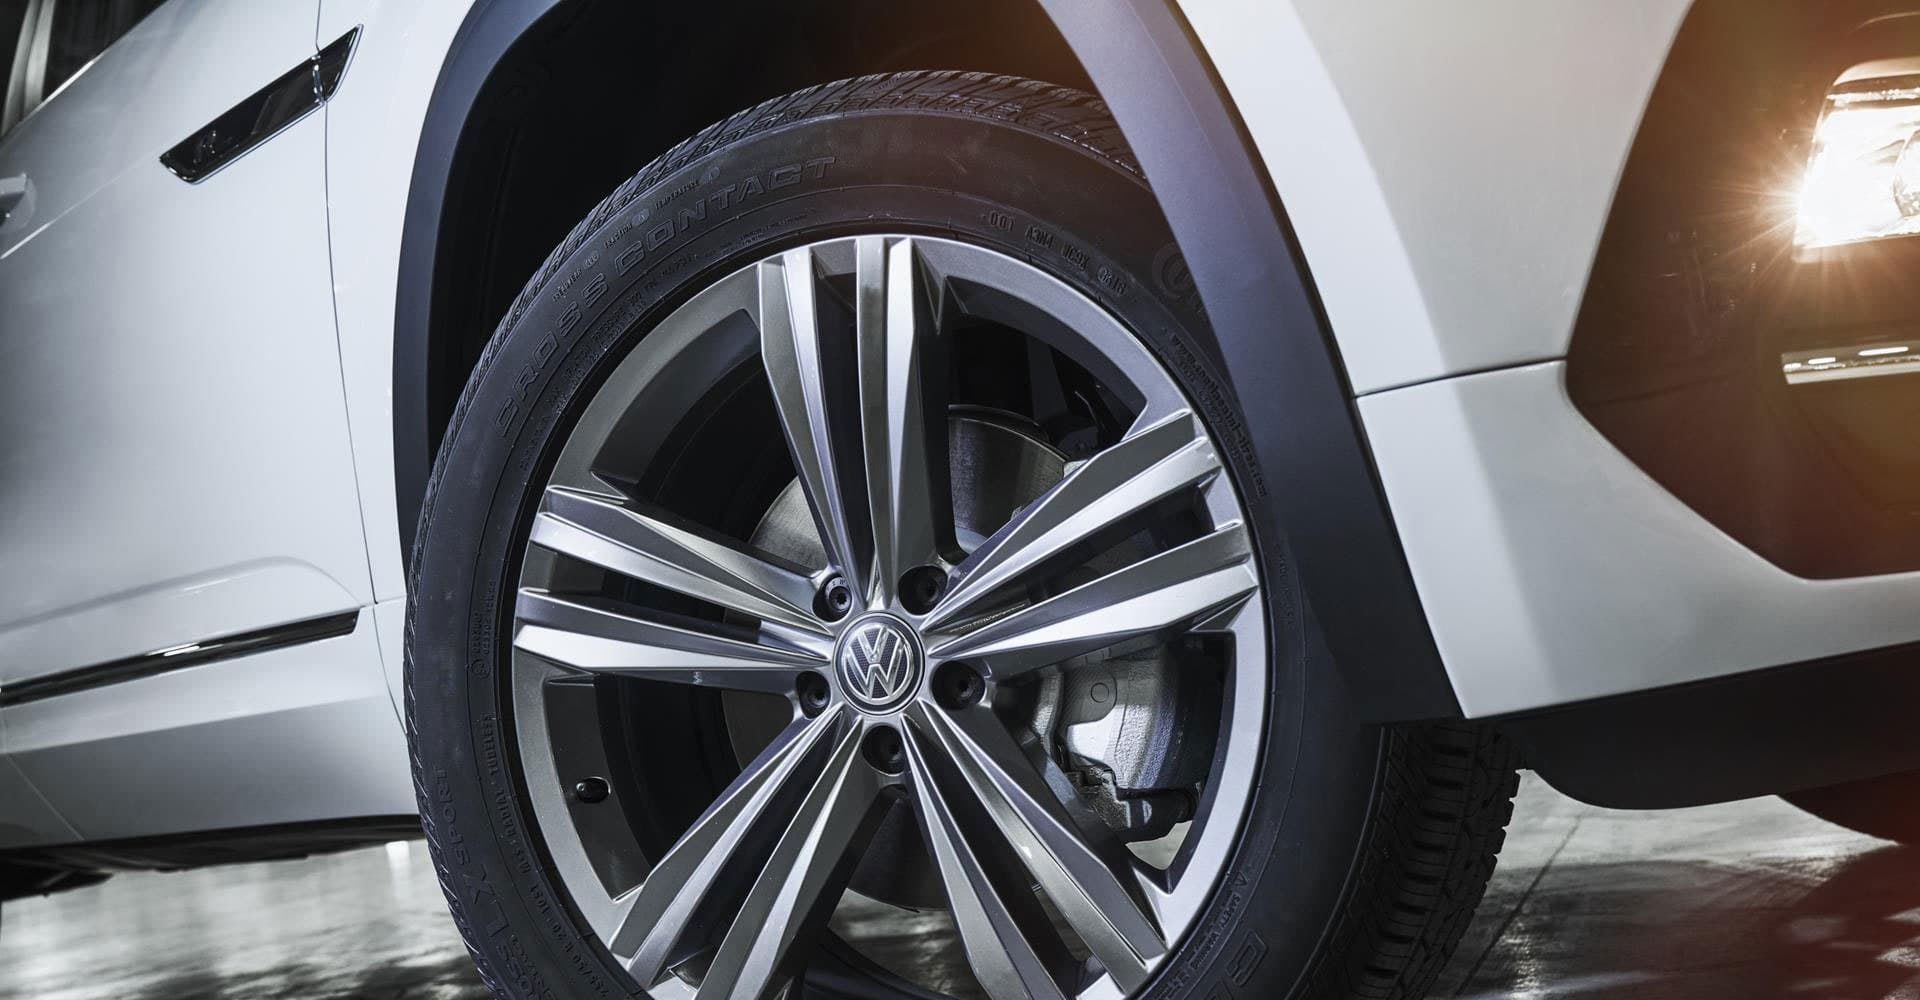 Exterior view of new VW model tires